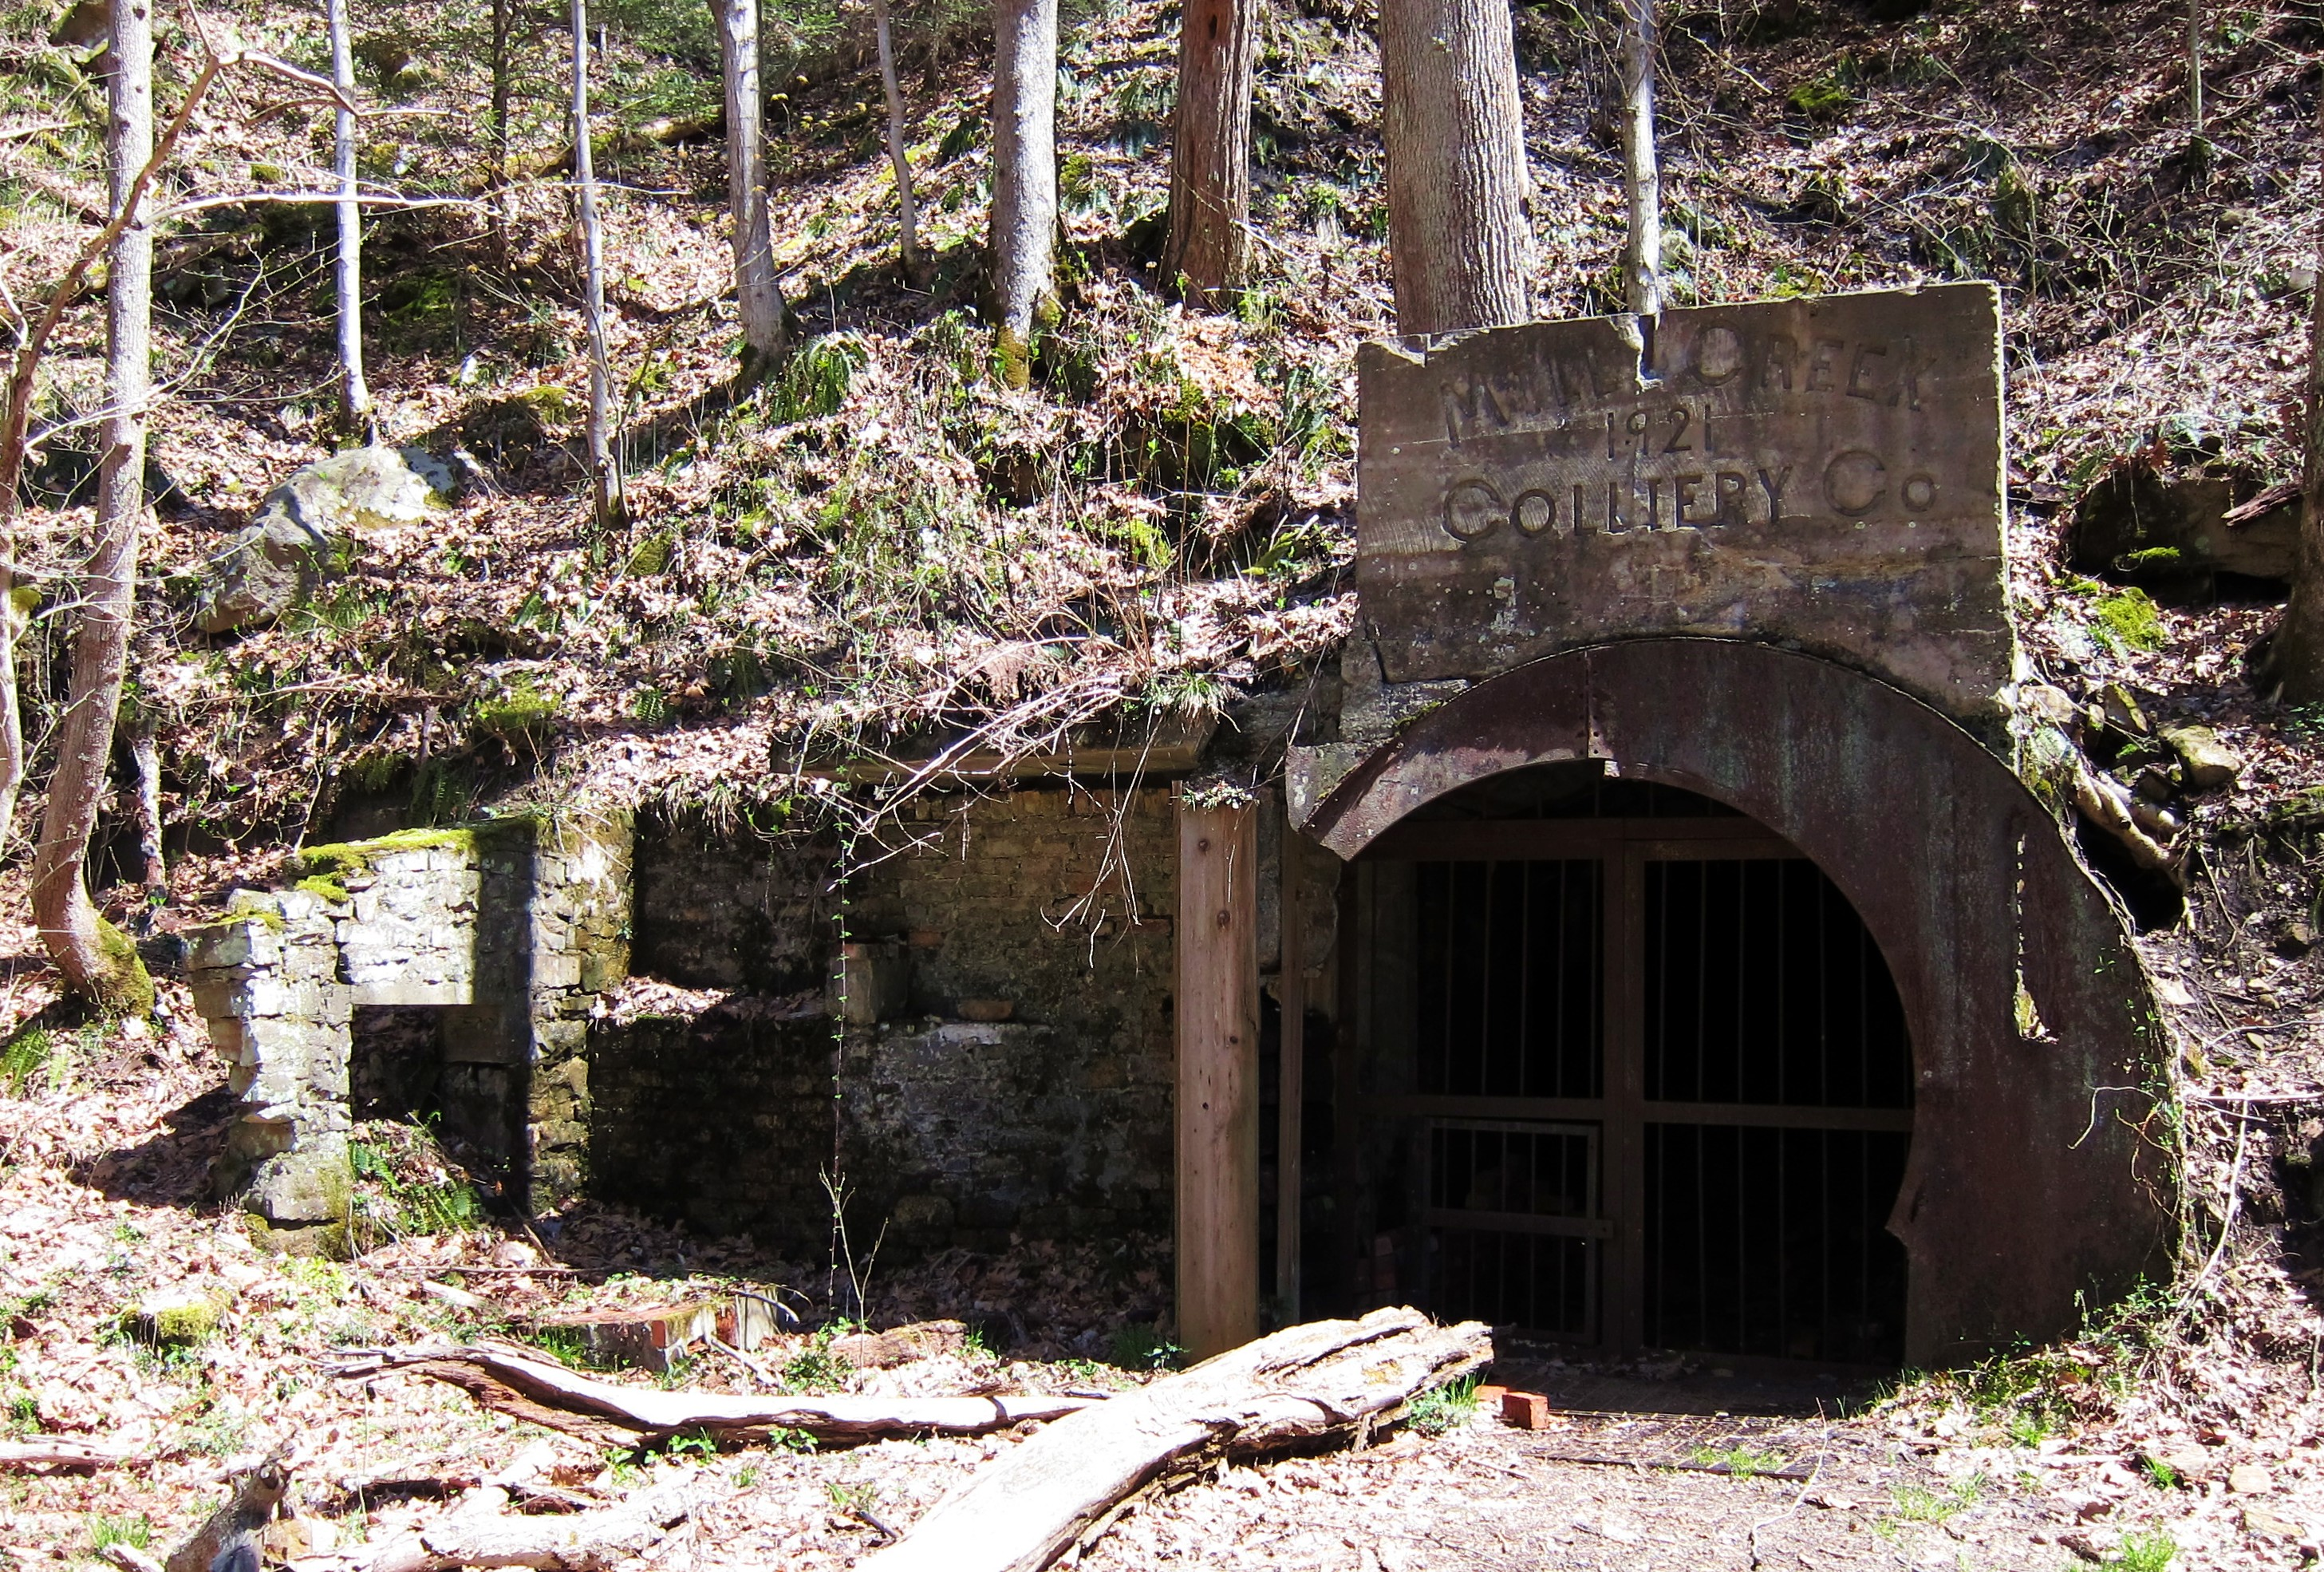 west virginia state park west virginia travel queen old mine entrance